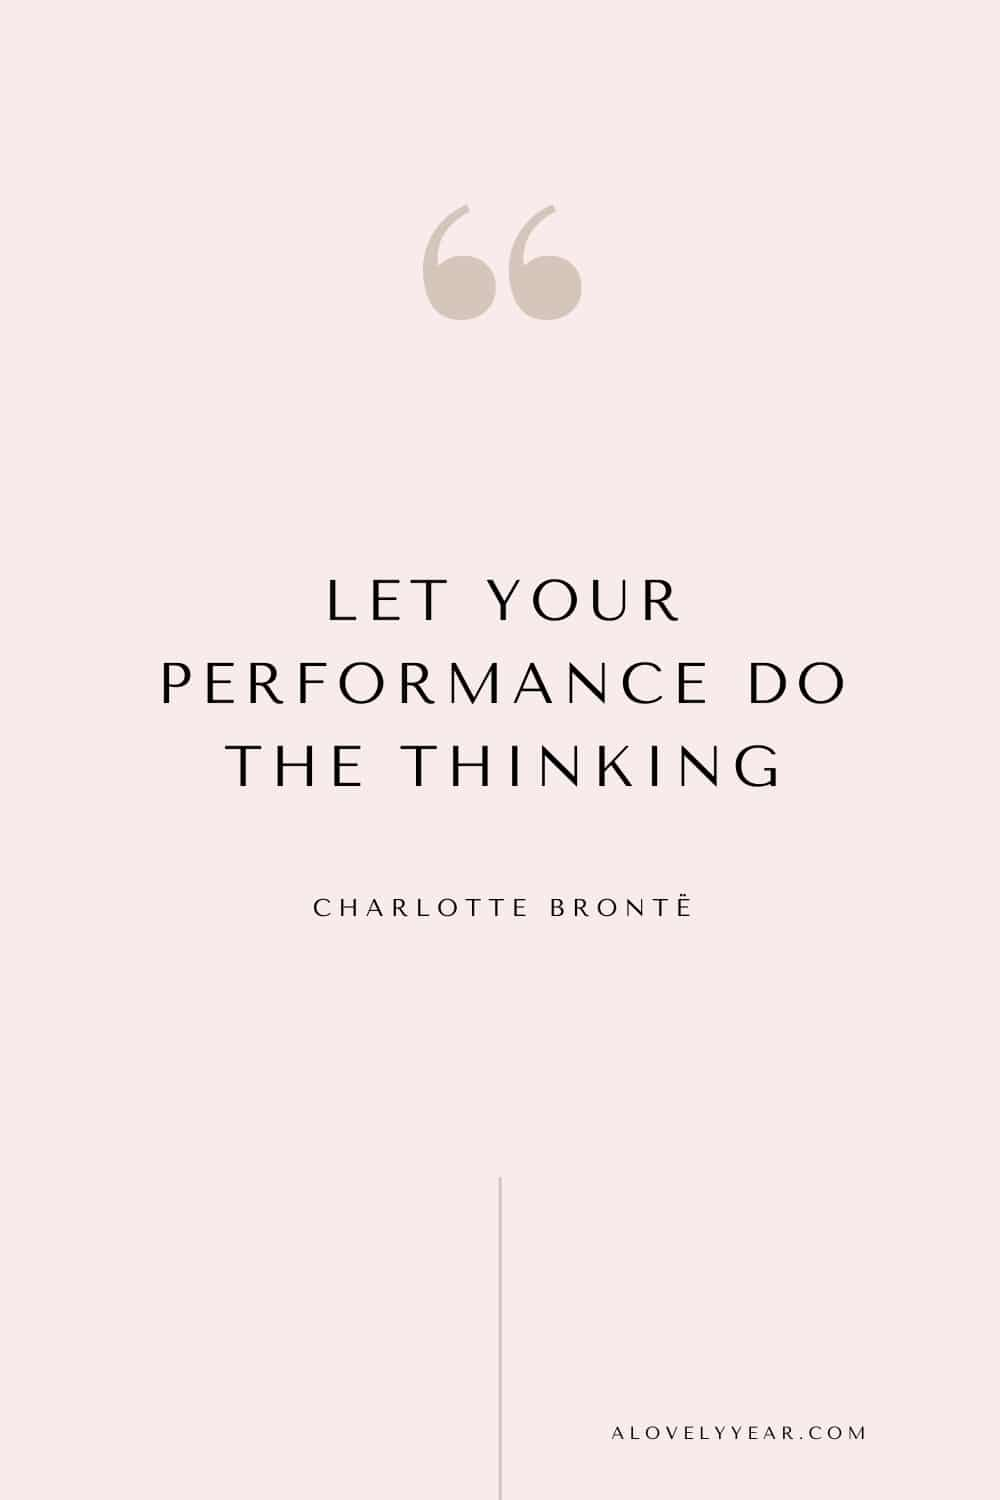 Get things done quote - Let your performance do the thinking. ―Charlotte Brontë